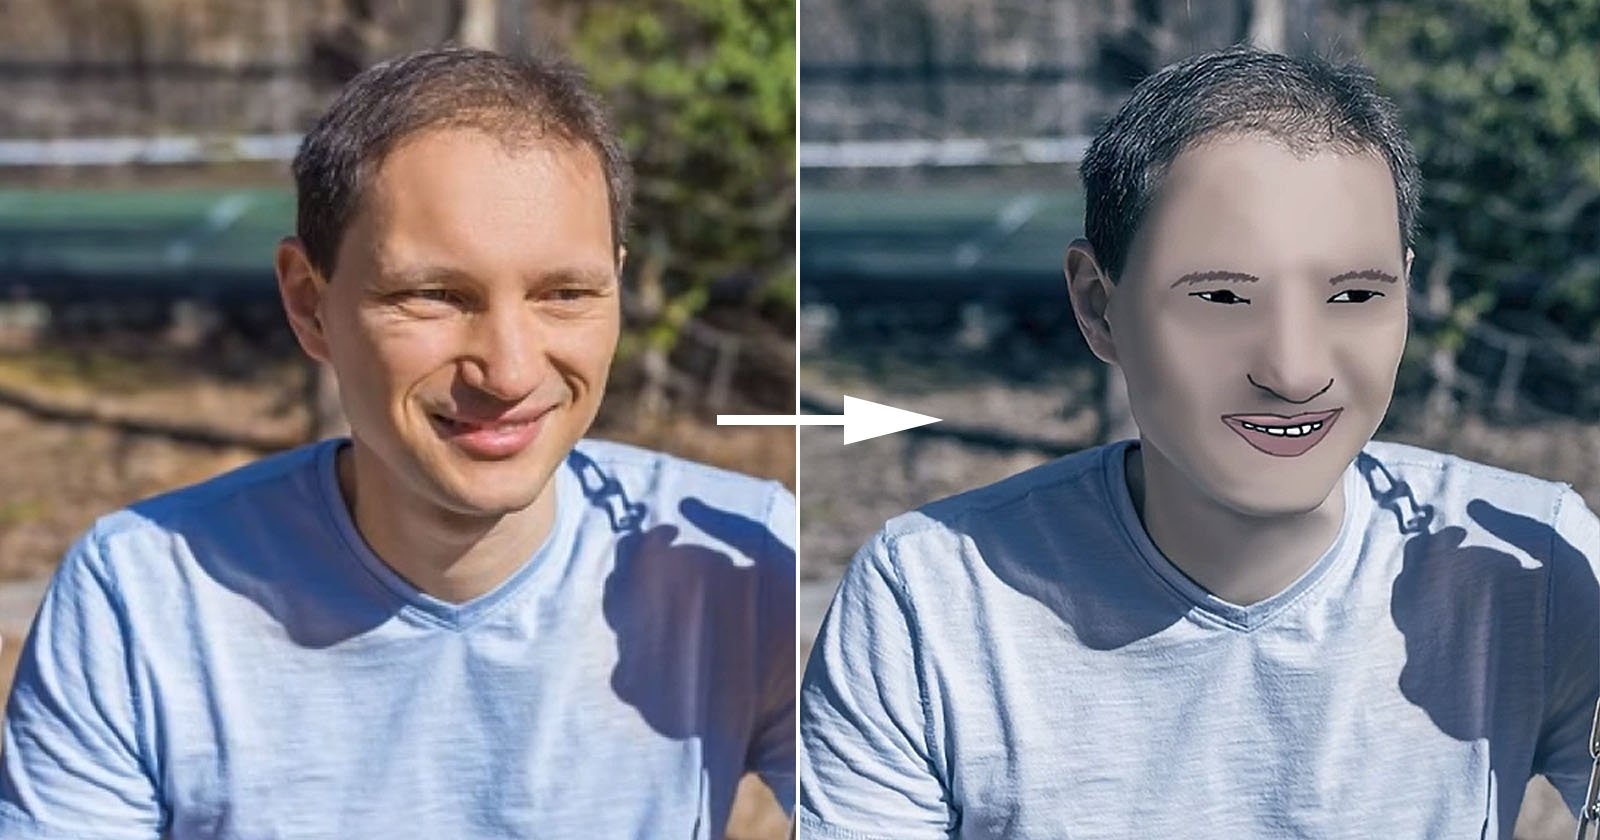 How to Photoshop Portraits in the Style of Pam Dave Zaring's Family Photos